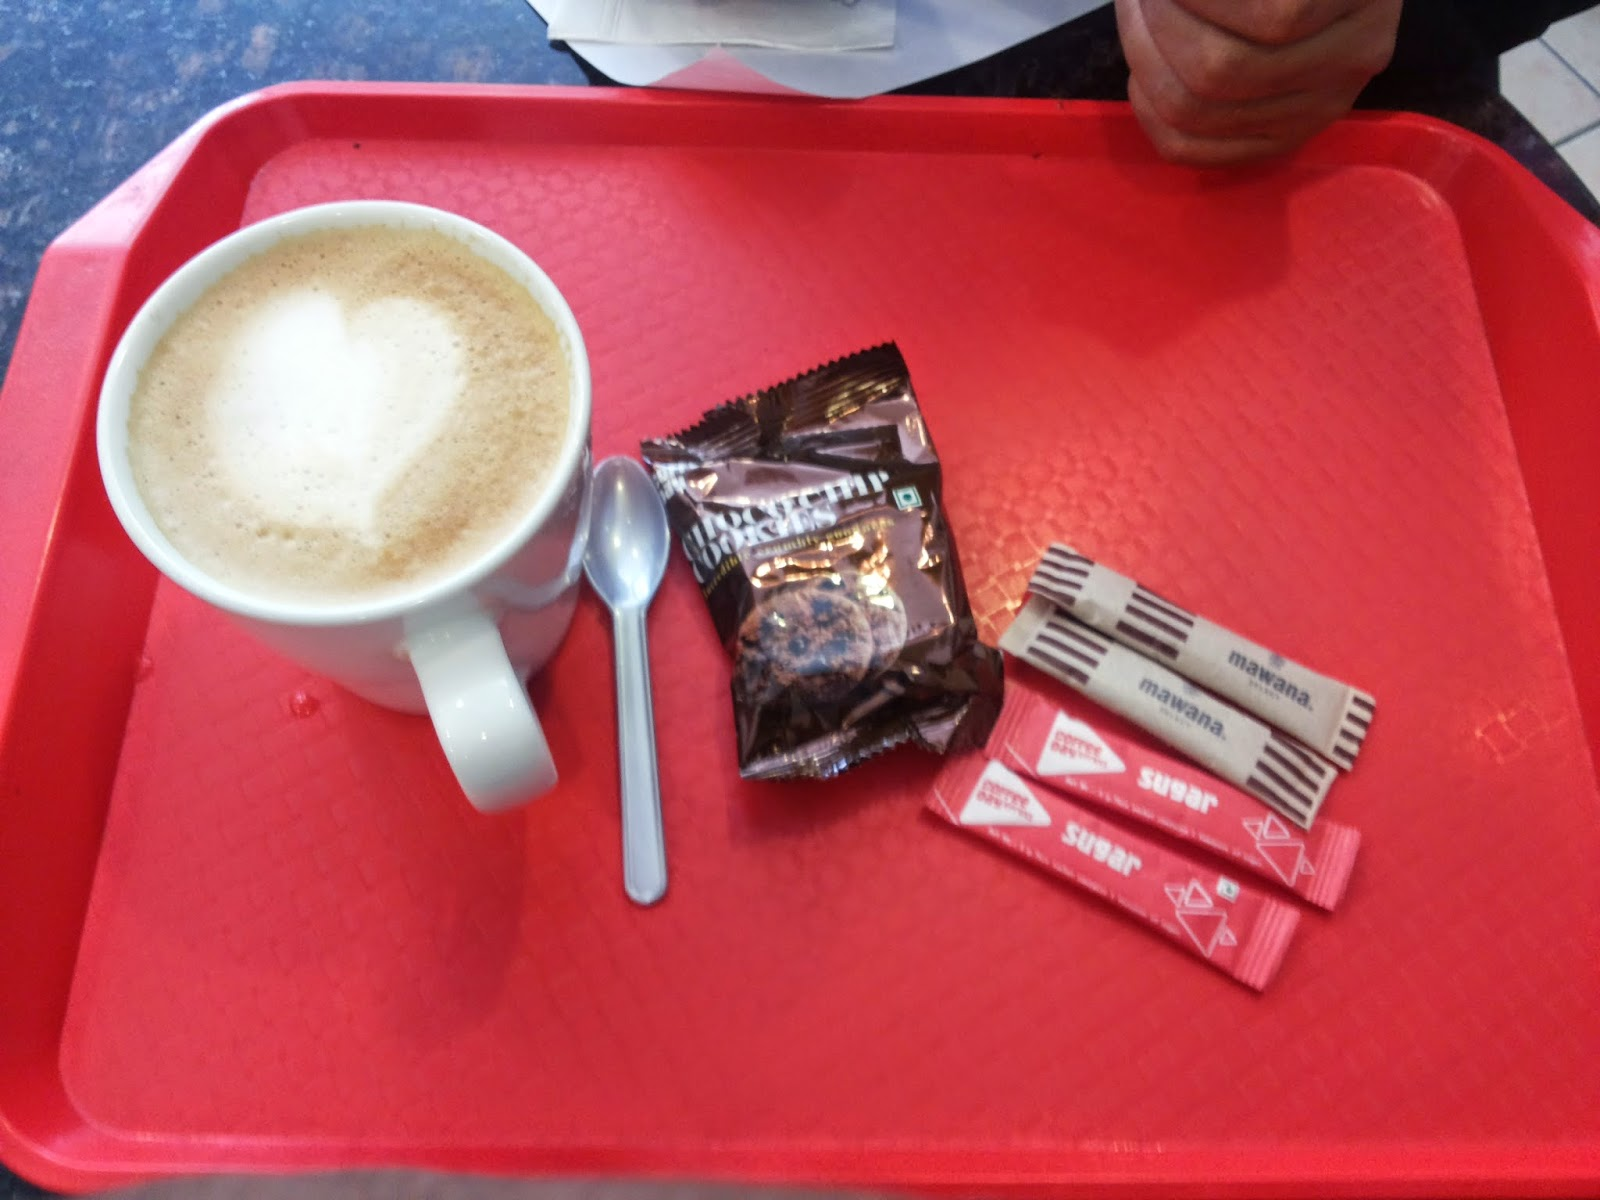 I'm addicted to have coffee with you - Cafe Coffee Day - CCD